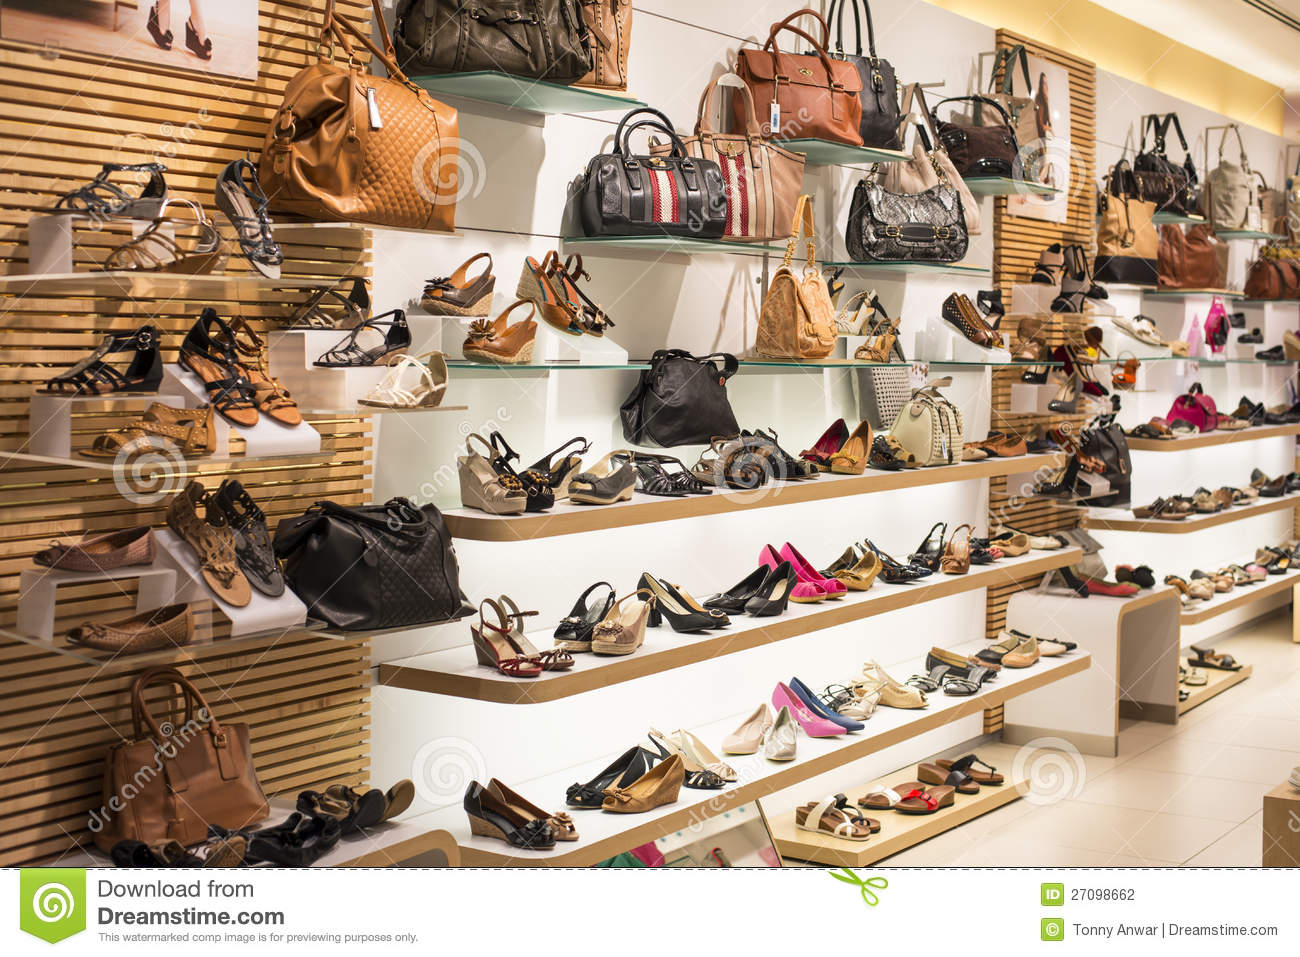 b724372b954d9 Ladies Shoe and Bag stock photo. Image of woman, variety - 27098662